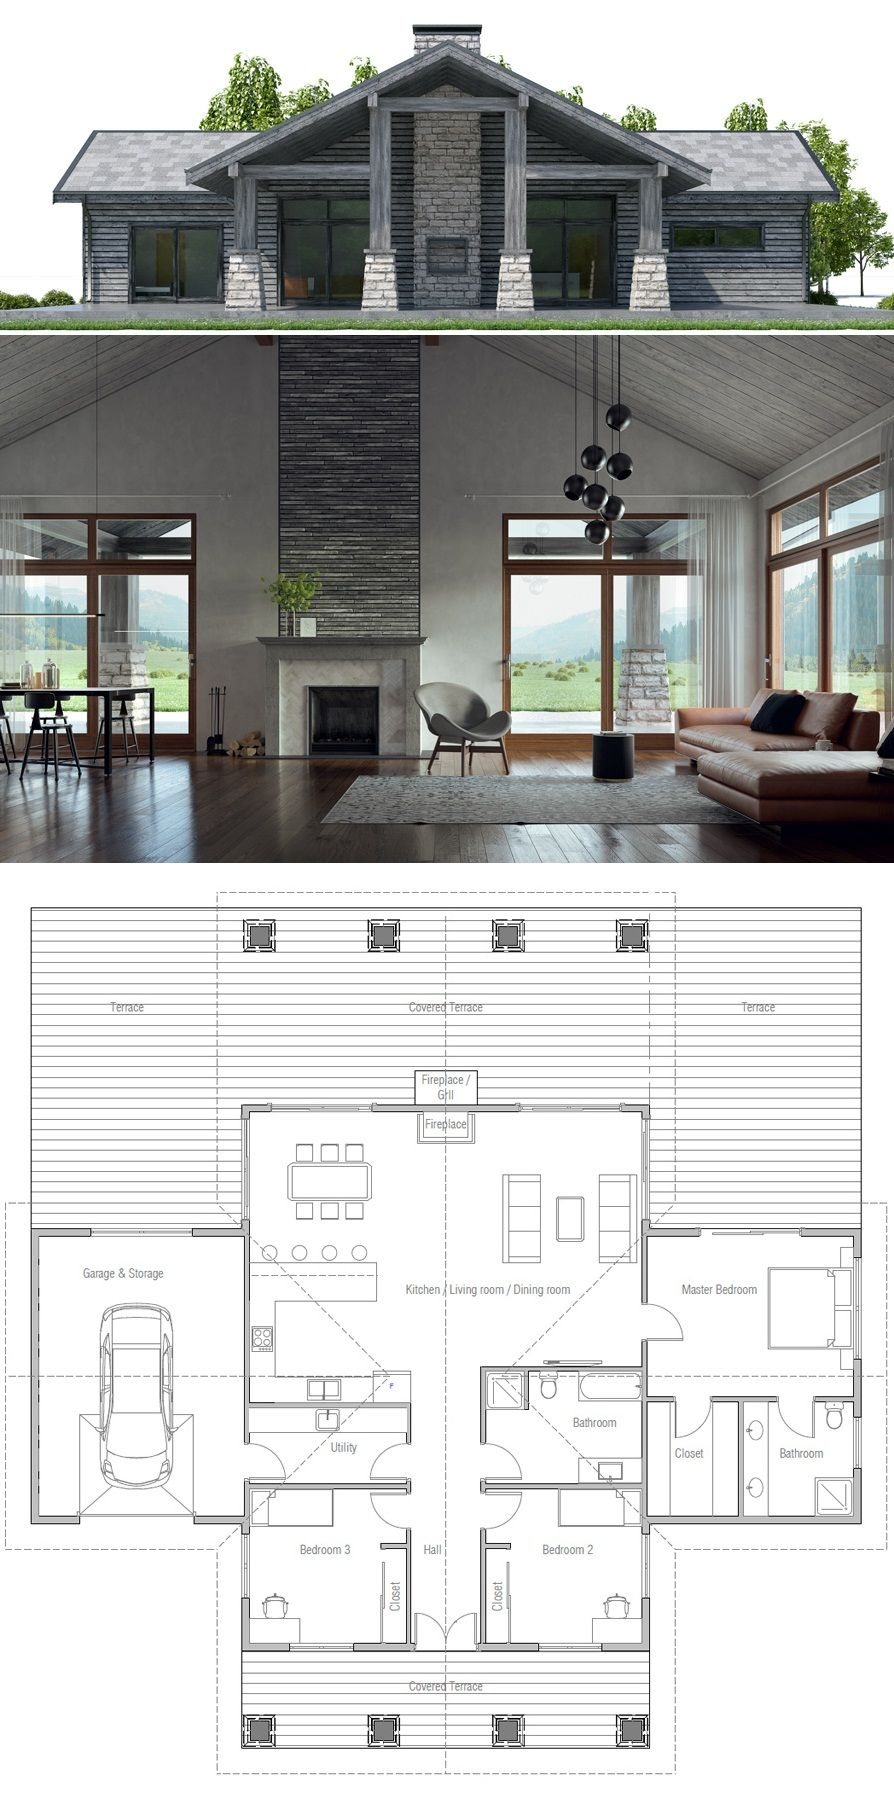 house design house plan ch447 100 house design house plan ch447